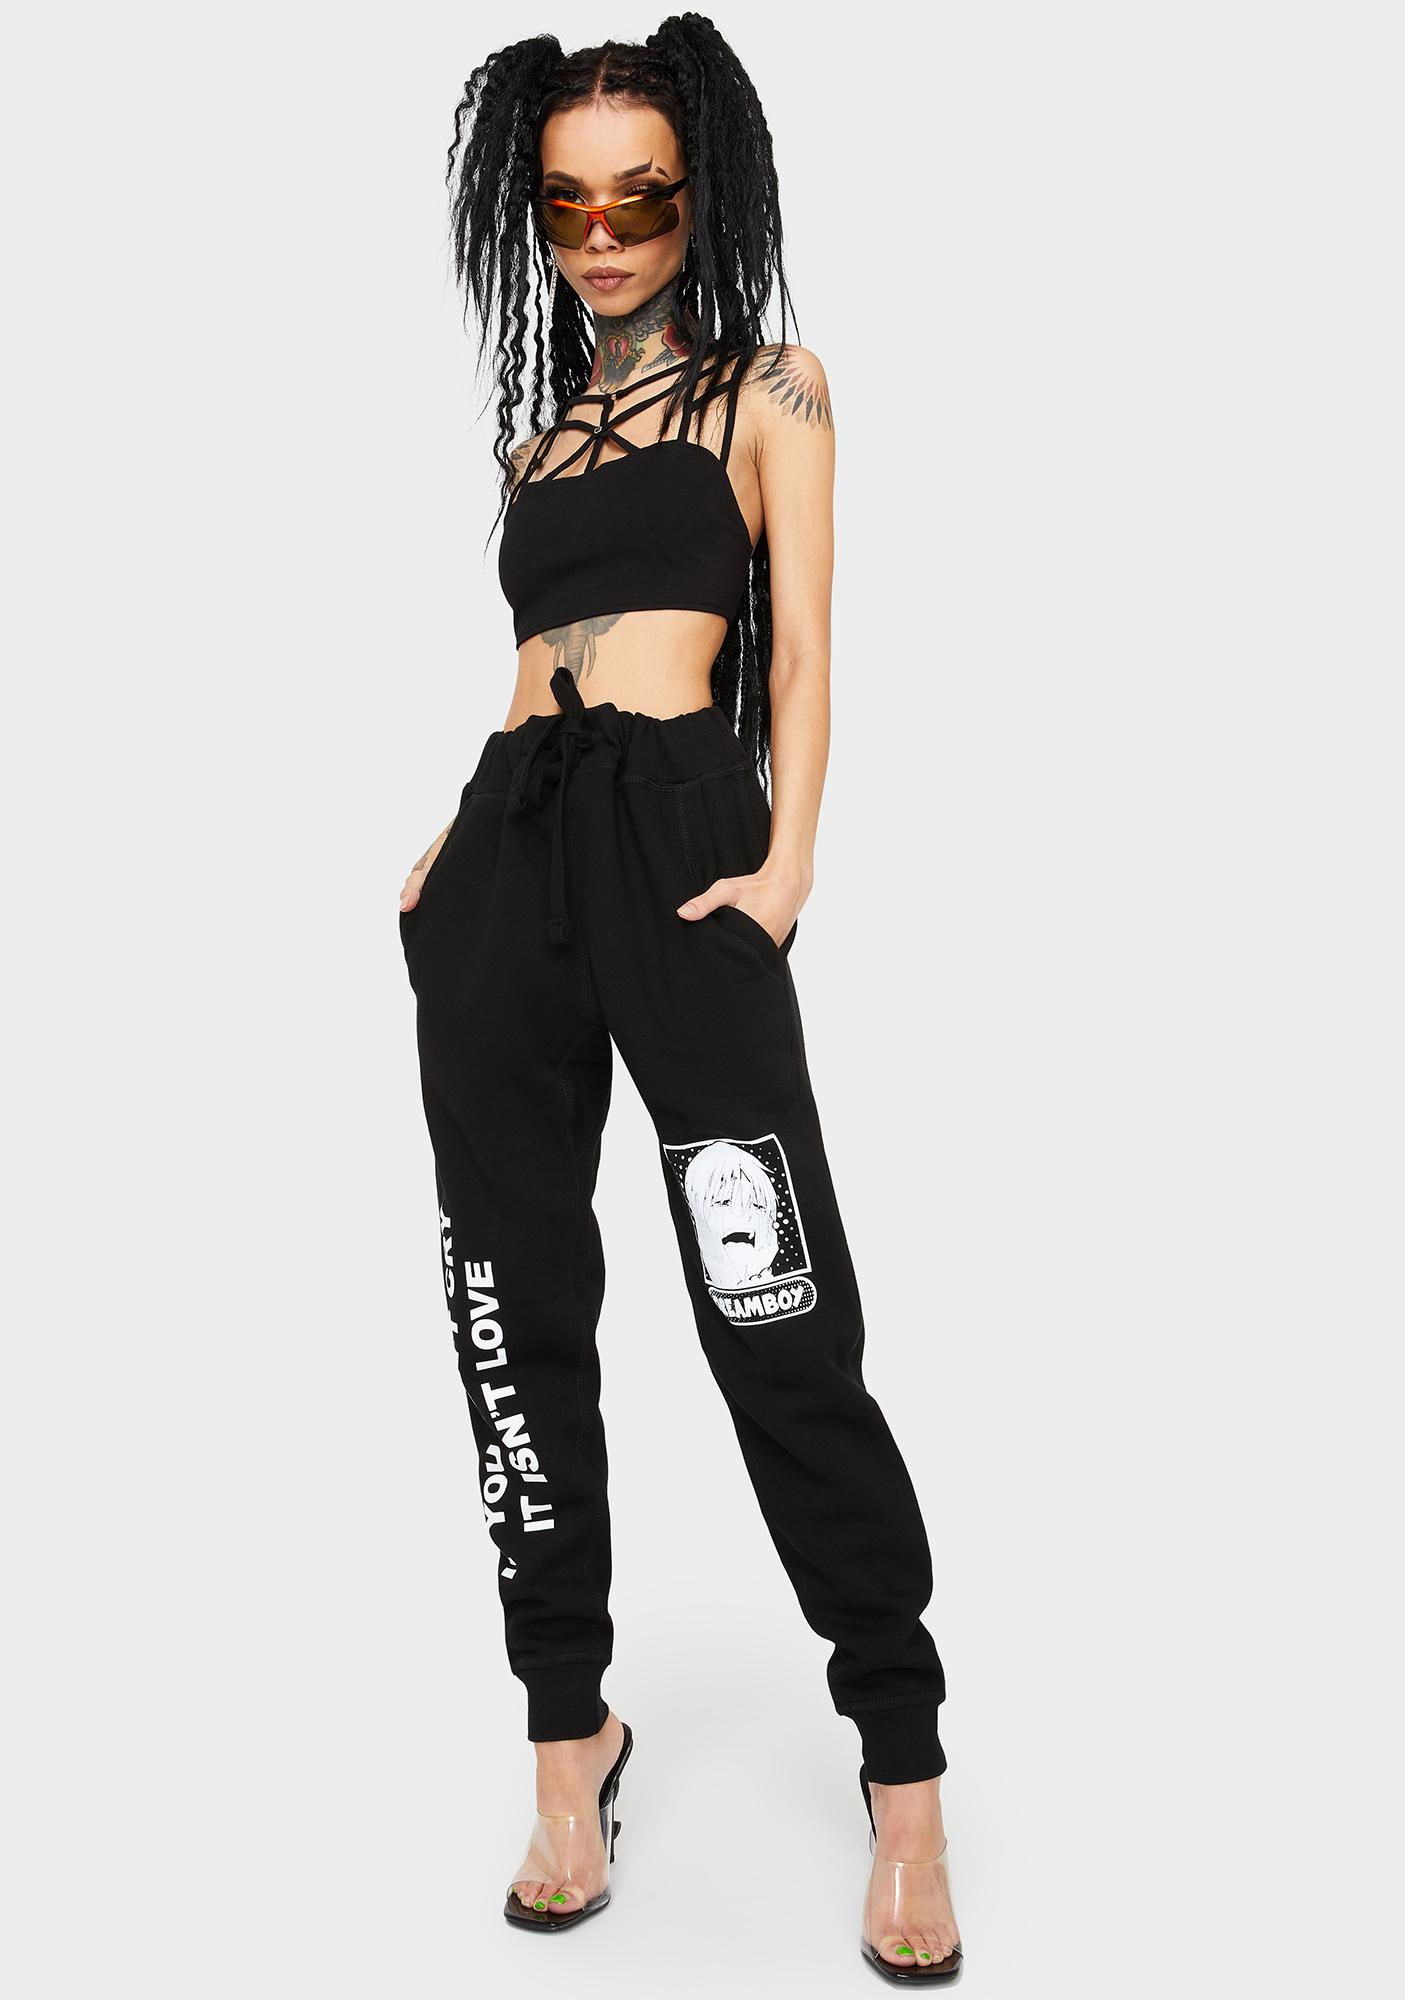 Dream Bandits Australia Ready Set Go Crop Top